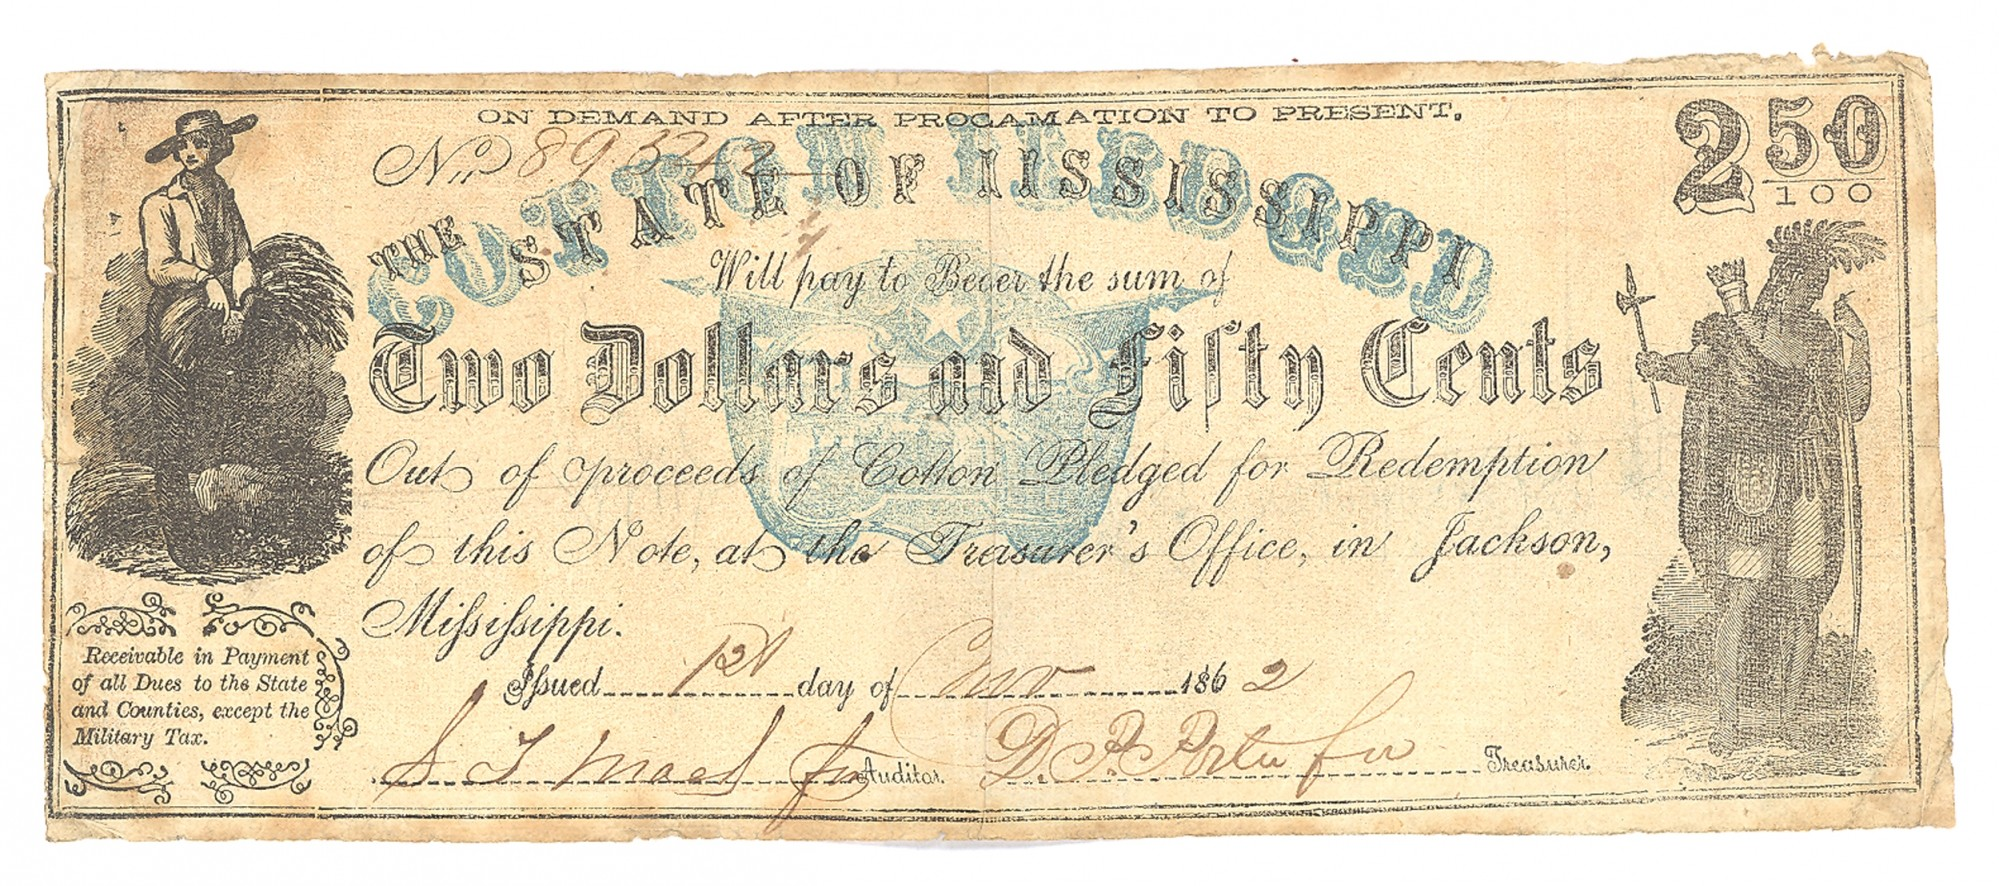 STATE OF MISSISSIPPI COTTON PLEDGED, MISSISSIPPI, $2.50 NOTE